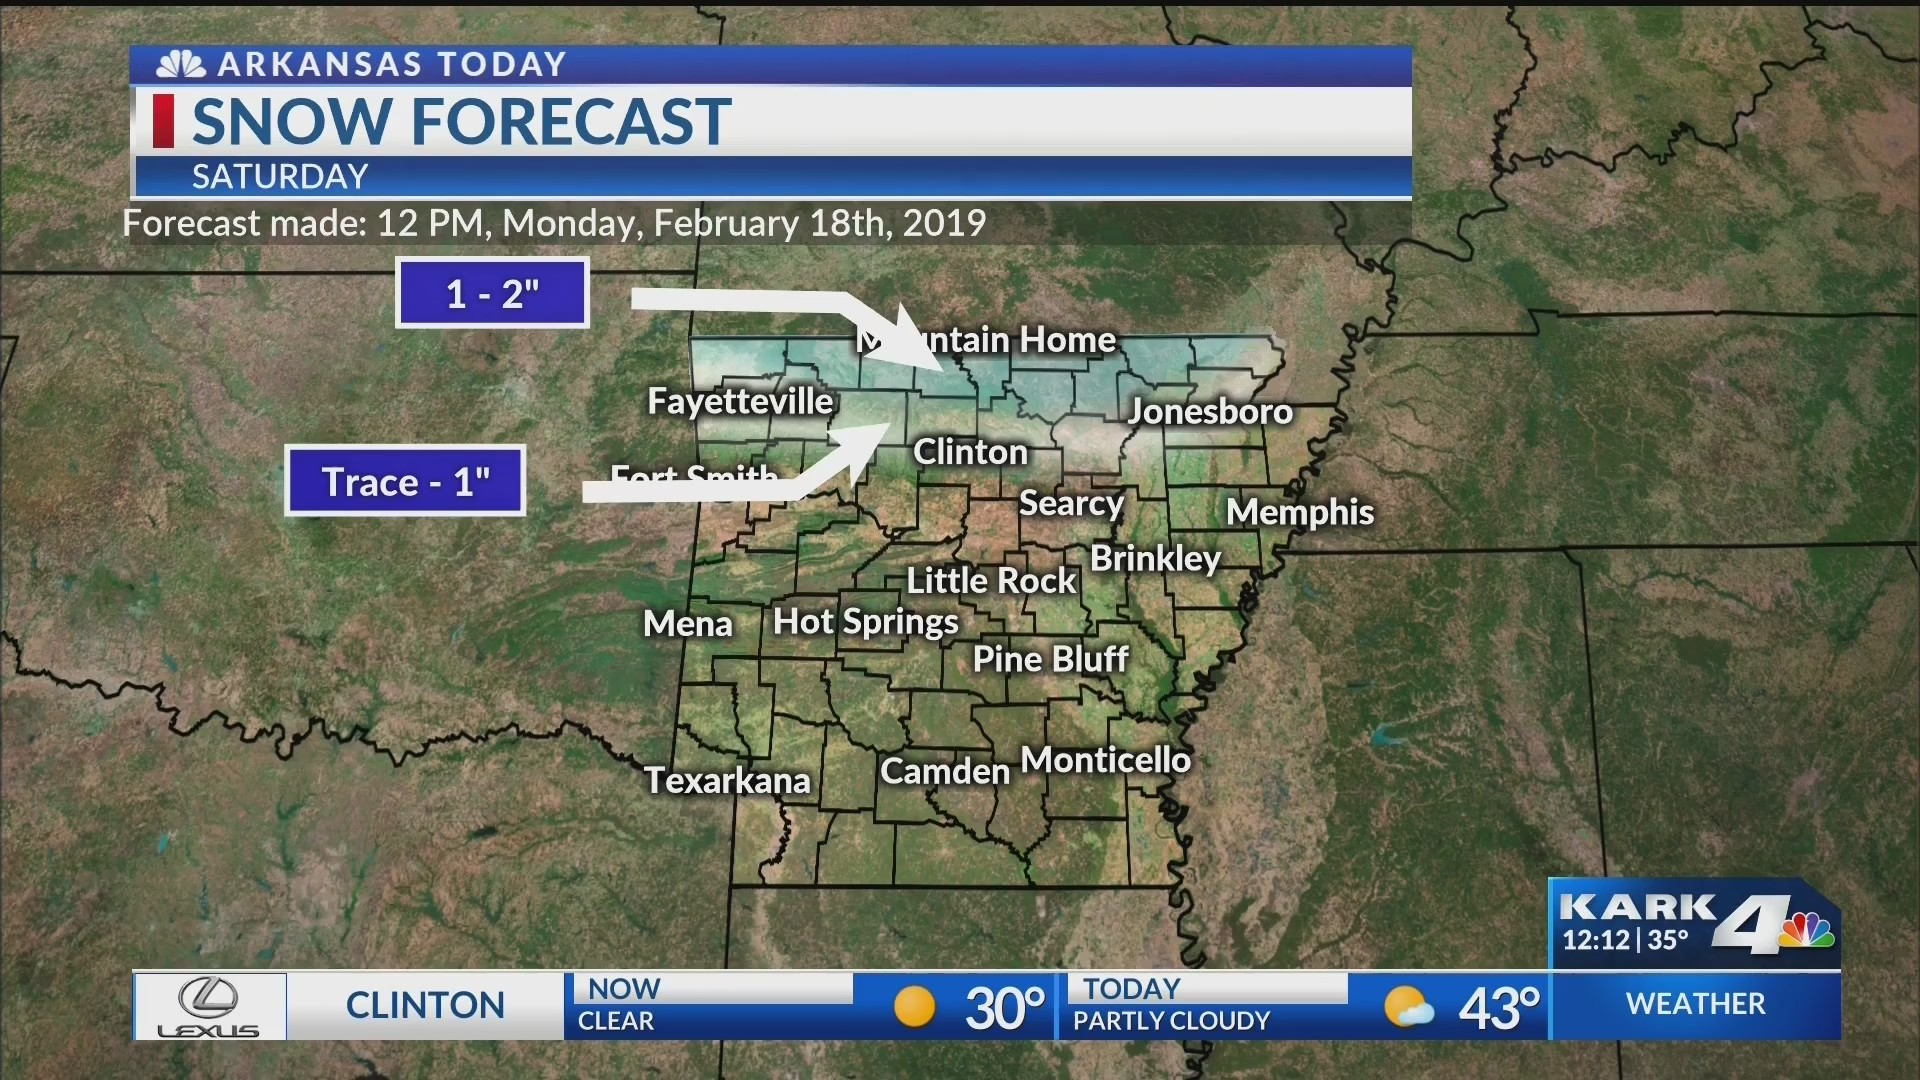 Statewide_Forecast_02_18_19_0_20190218181721